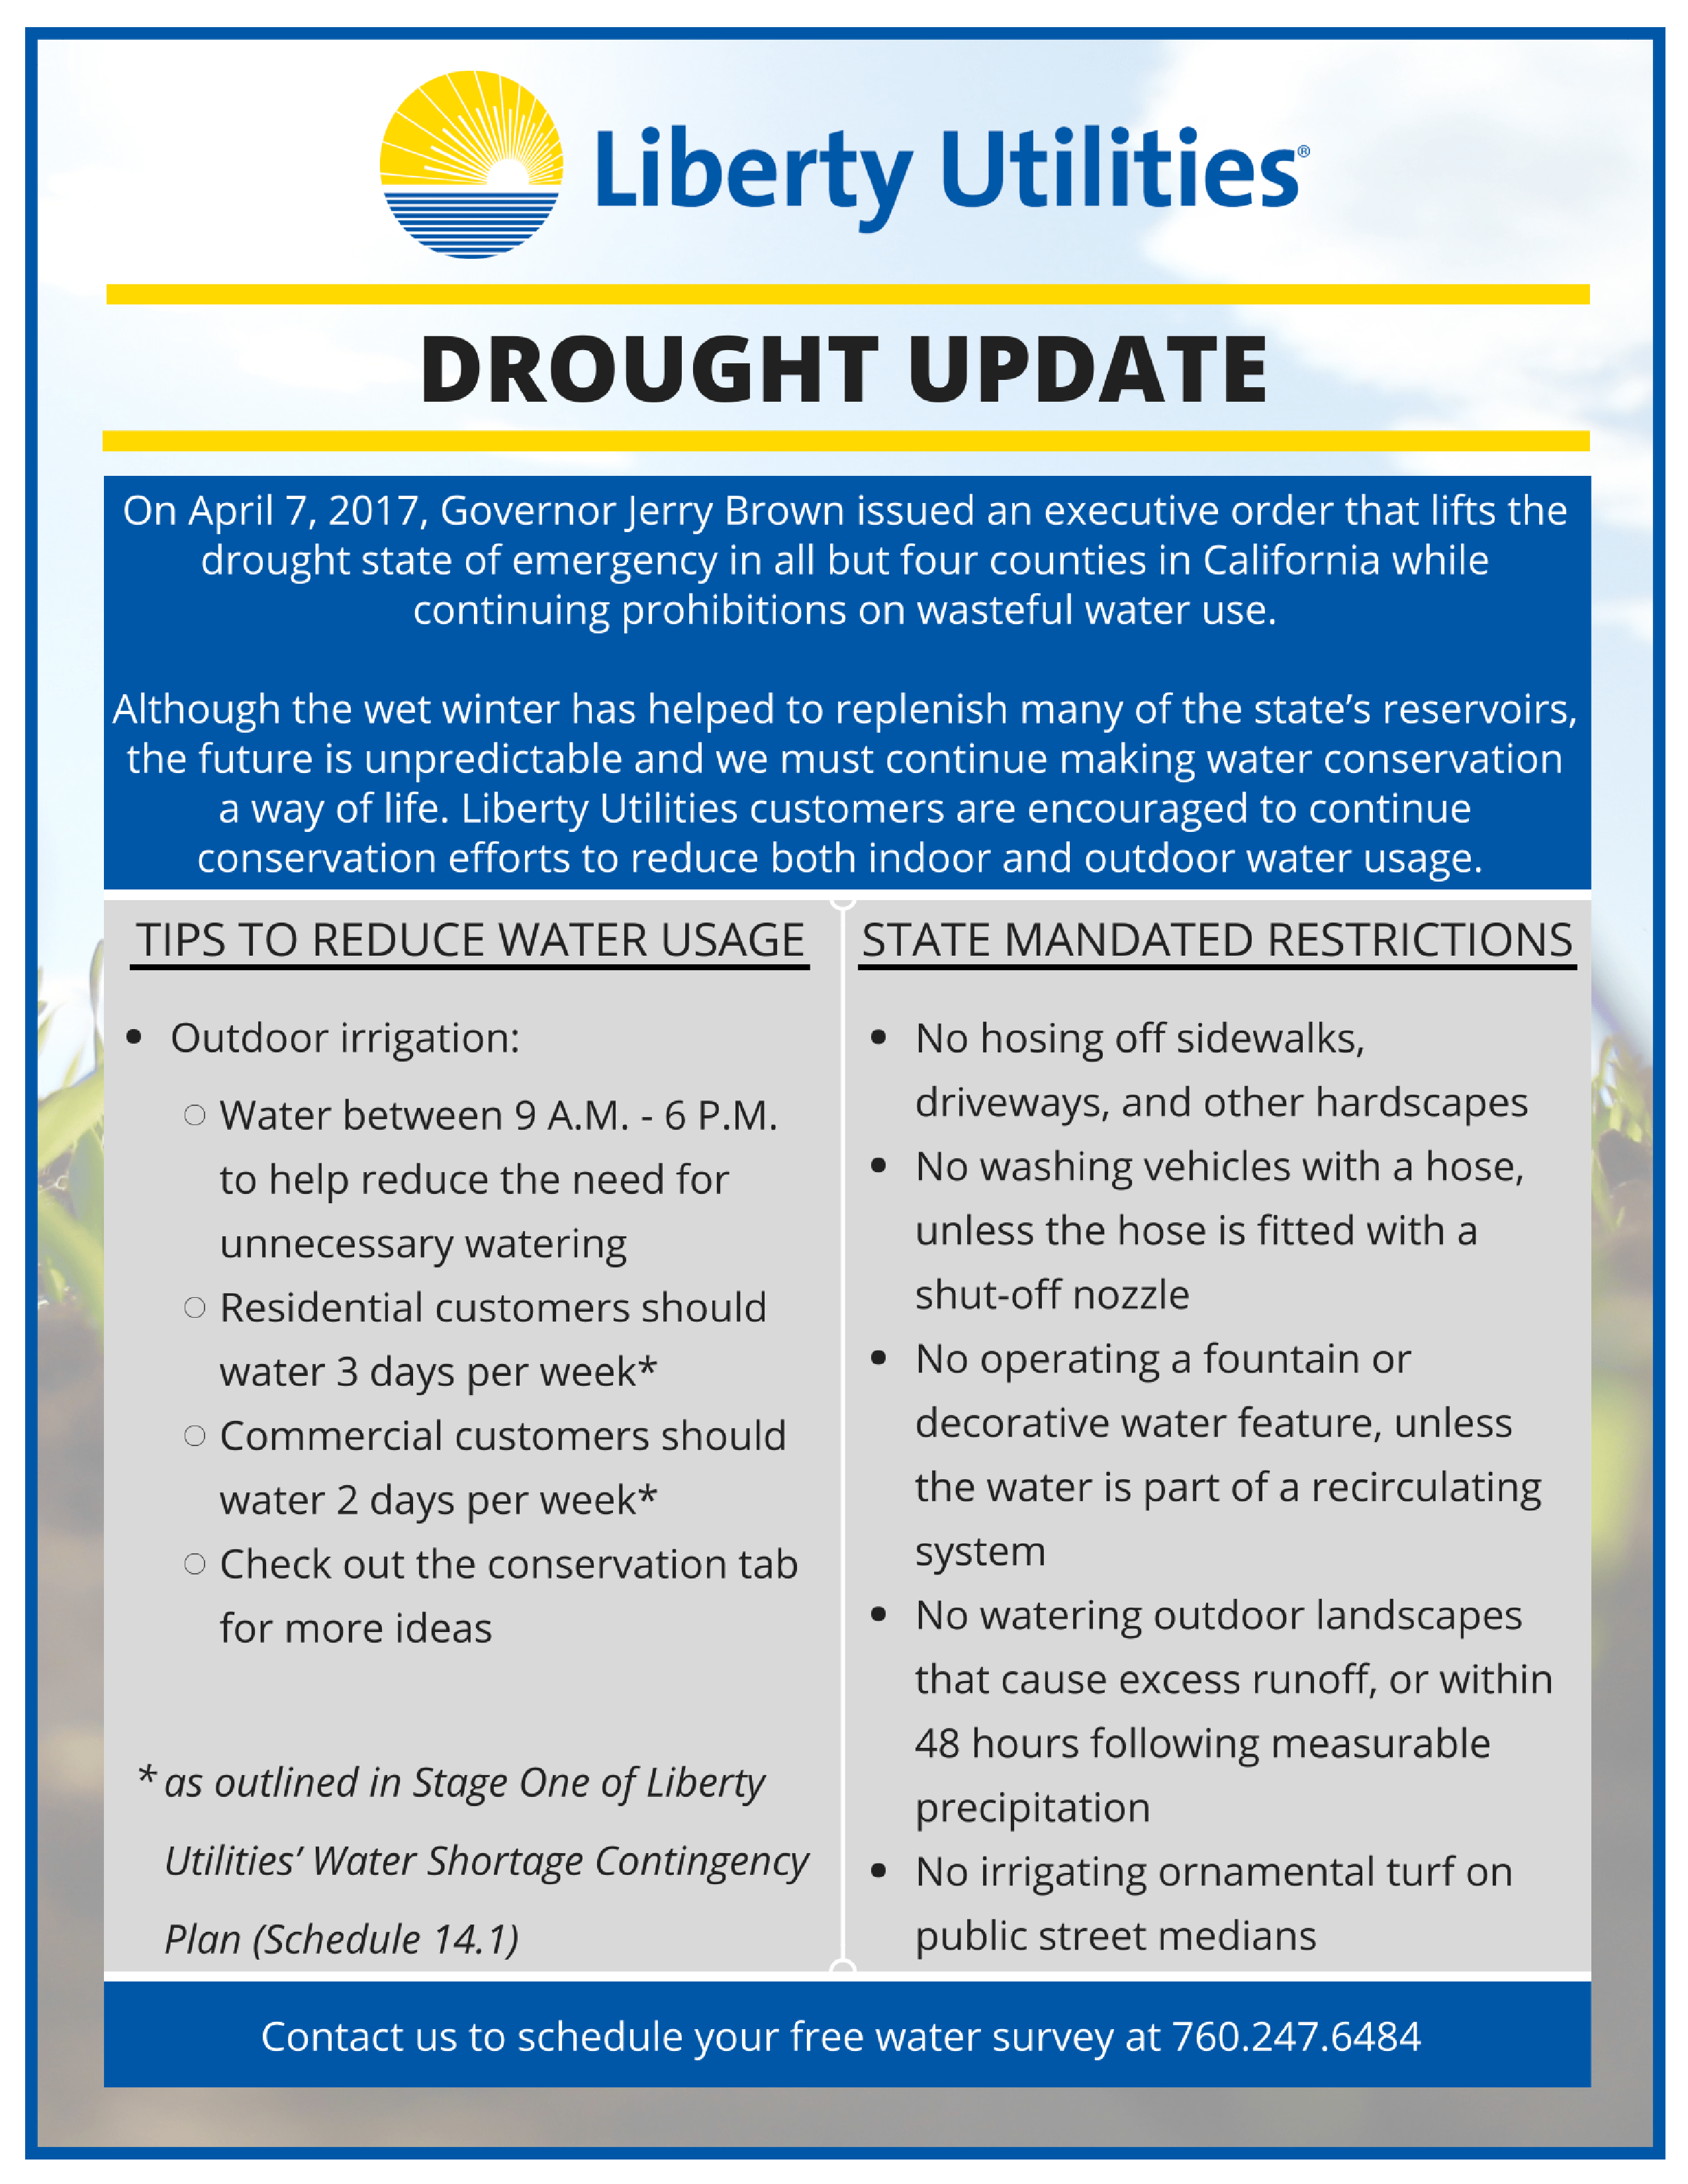 20170407-LAV-drought-guidelines